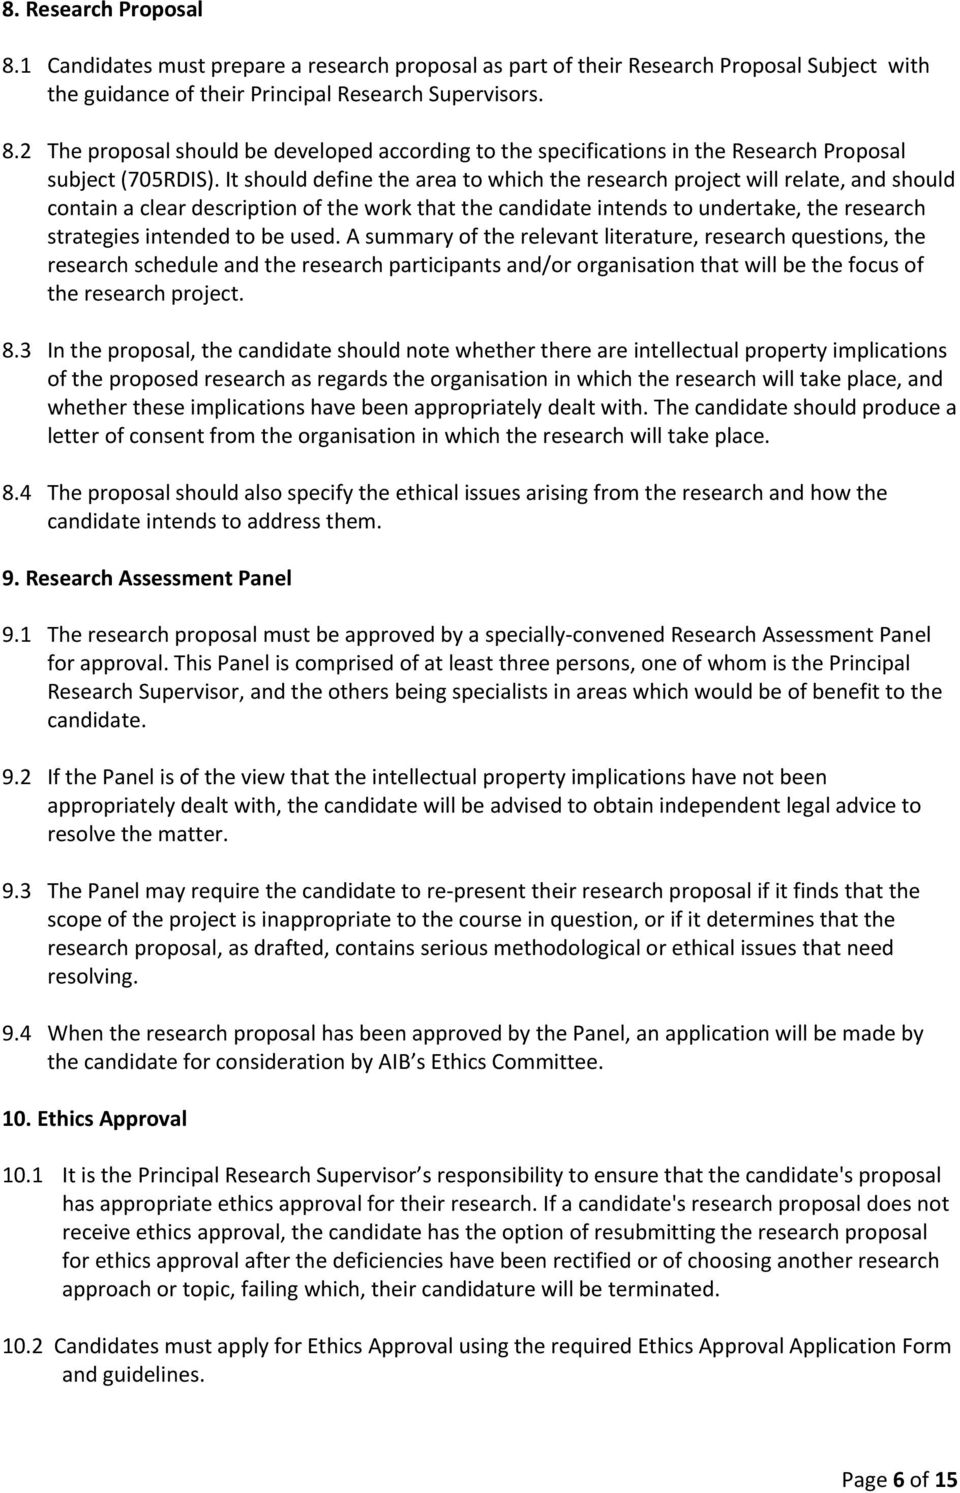 used. A summary of the relevant literature, research questions, the research schedule and the research participants and/or organisation that will be the focus of the research project. 8.